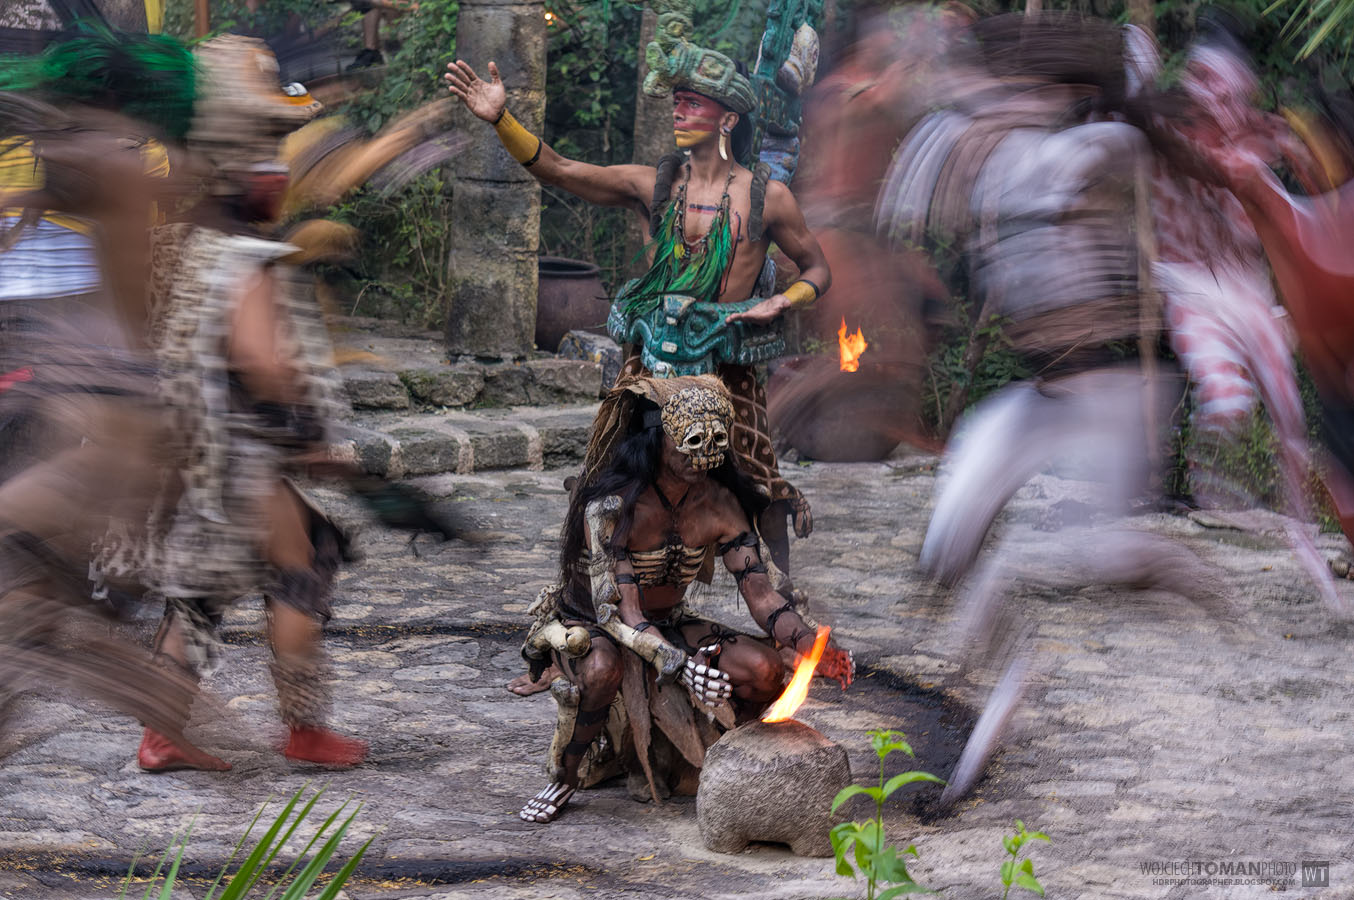 Crazy Mayan Dance in Xcaret park